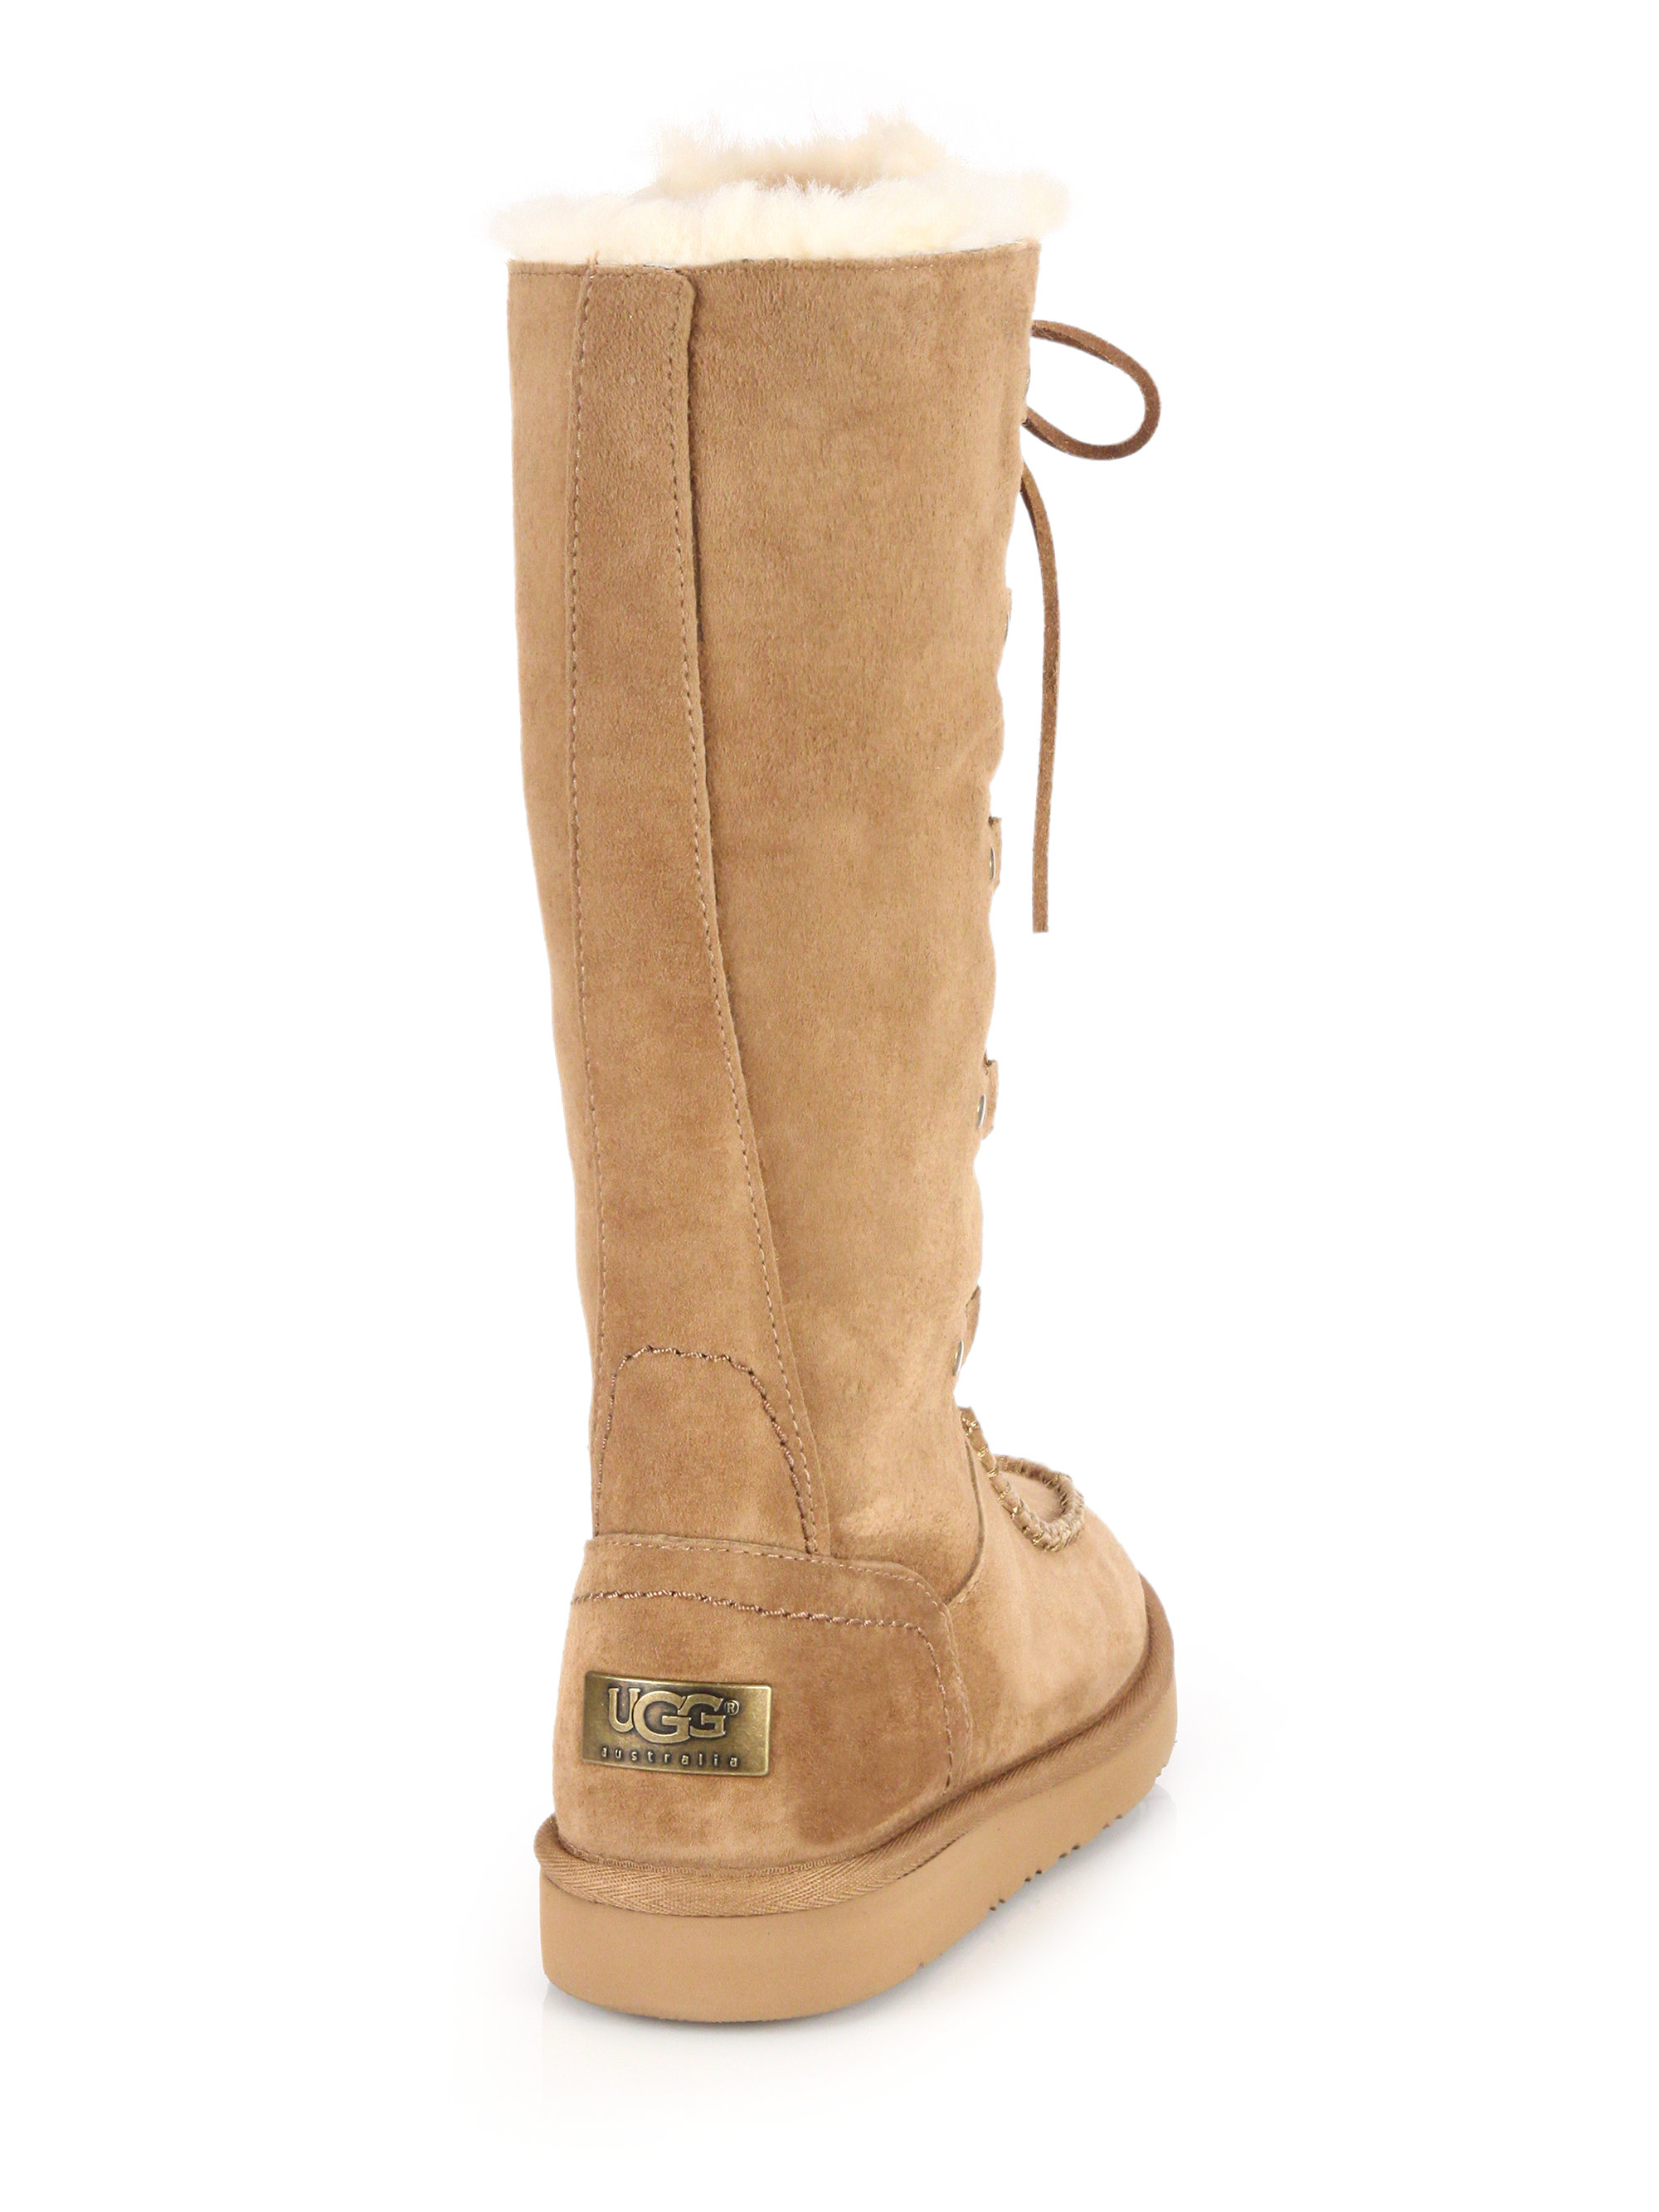 72de8c0b820 UGG Brown Appalachian Lace-up Shearling-lined Suede Boots